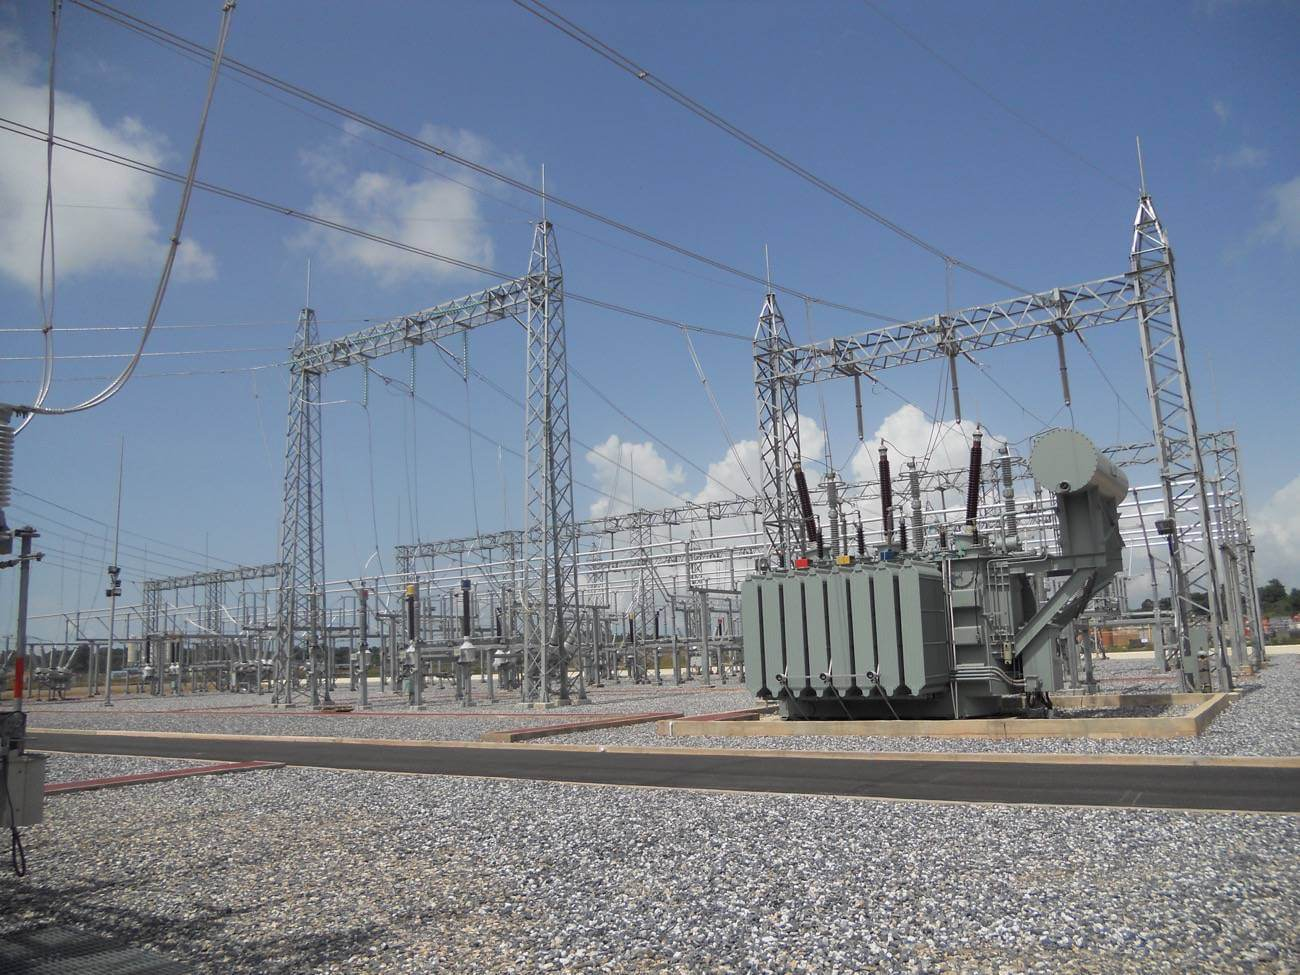 International substation project